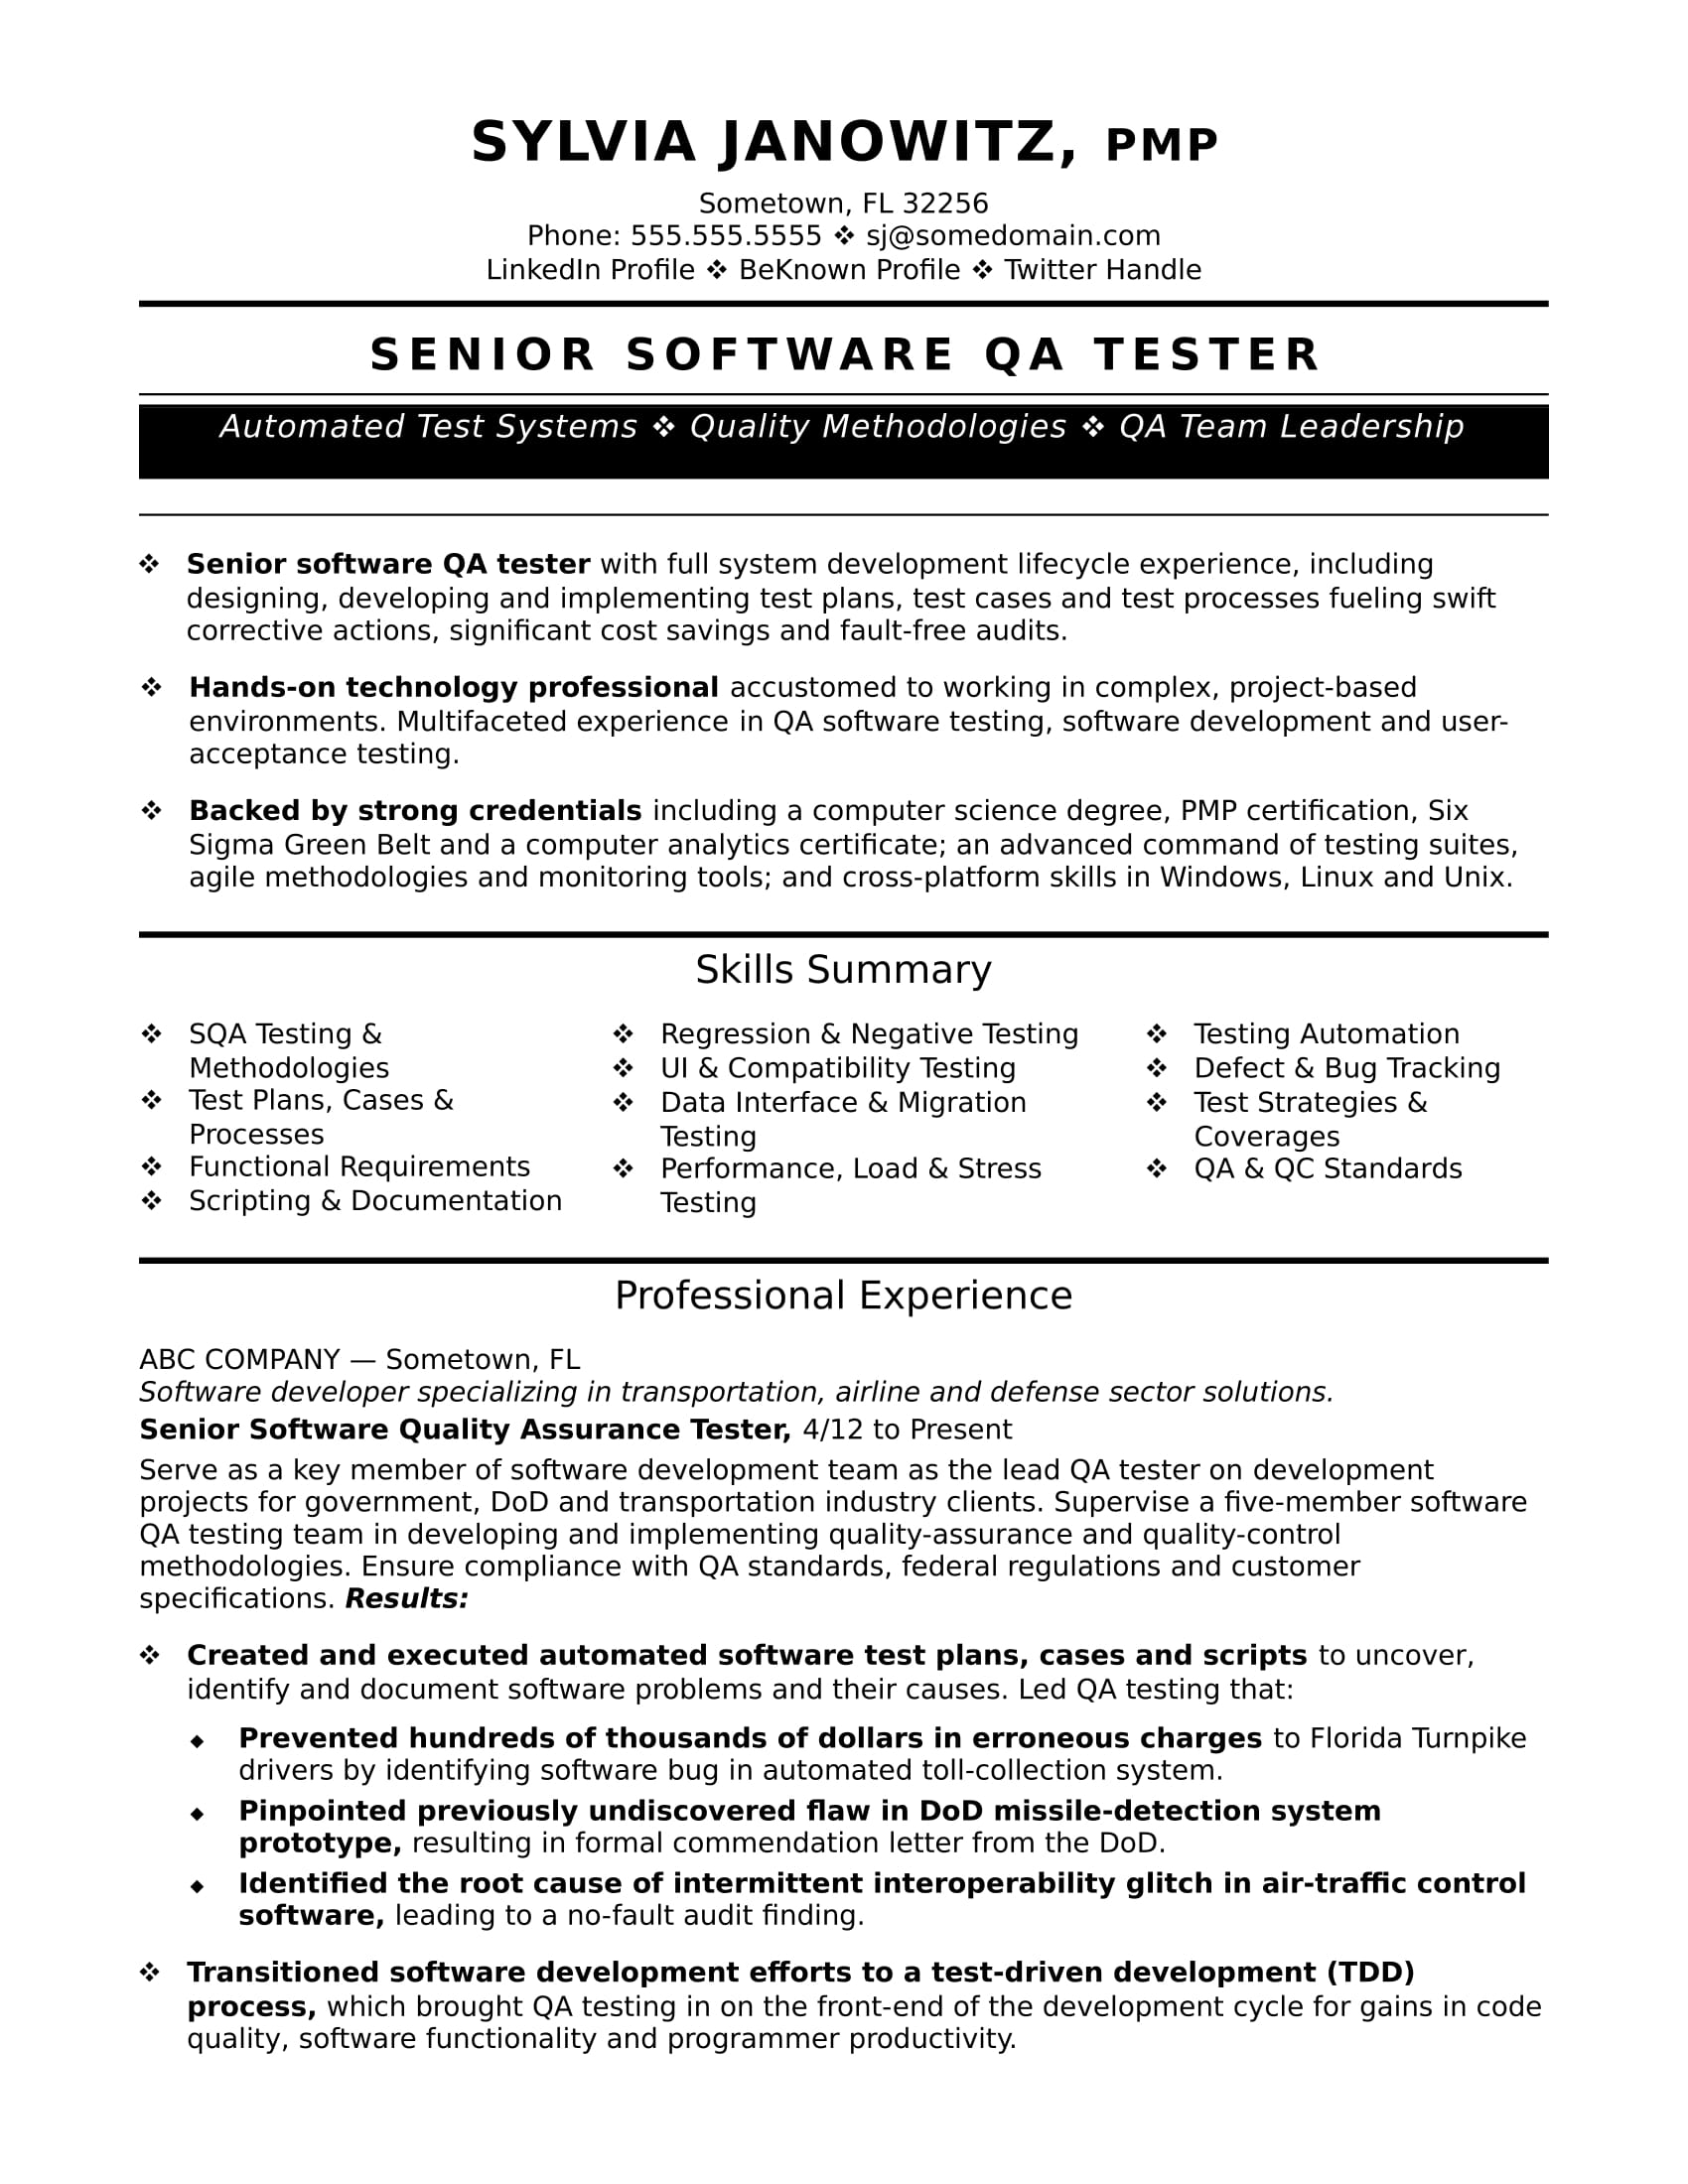 Experienced QA Software Tester Resume Sample Monstercom